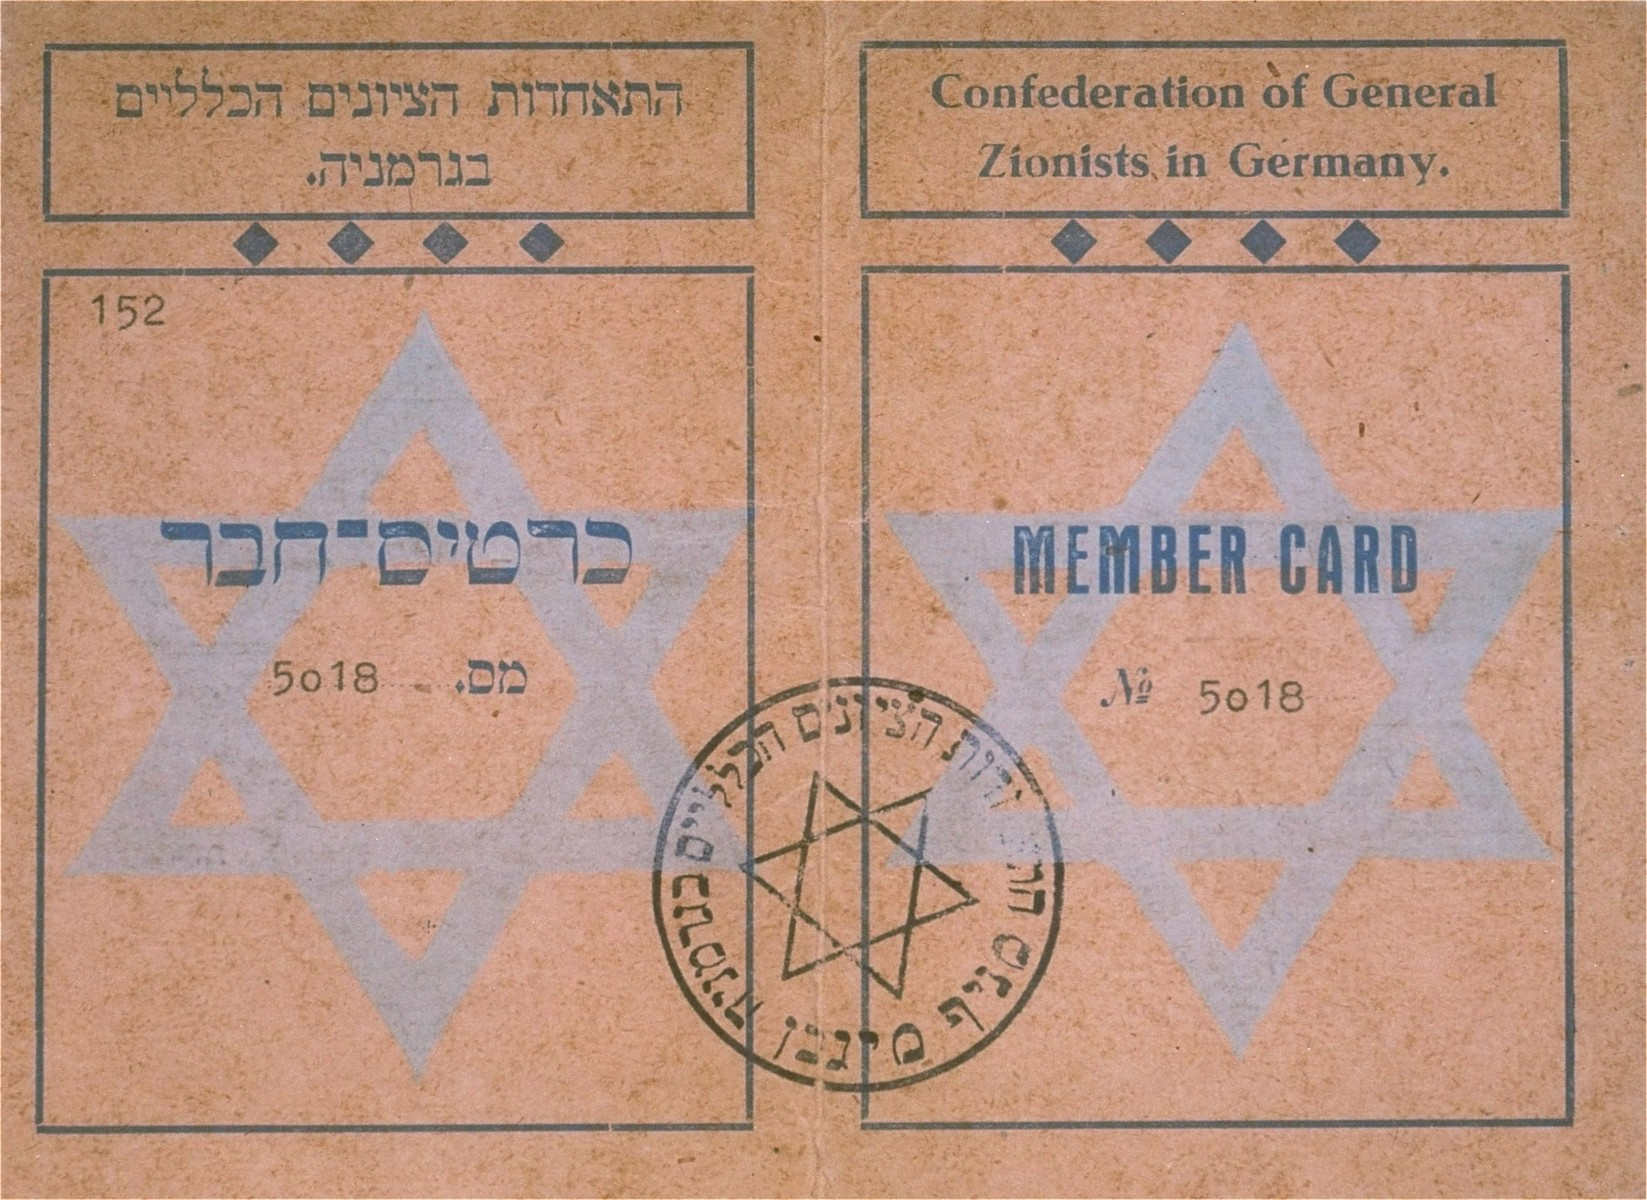 A membership card for the Confederation of General Zionists in Germany, Munich branch, belonging to Mendel Rozenblit, a Jewish displaced person living in Munich.  The card bears the Hebrew stamp of the Munich branch of the organization.